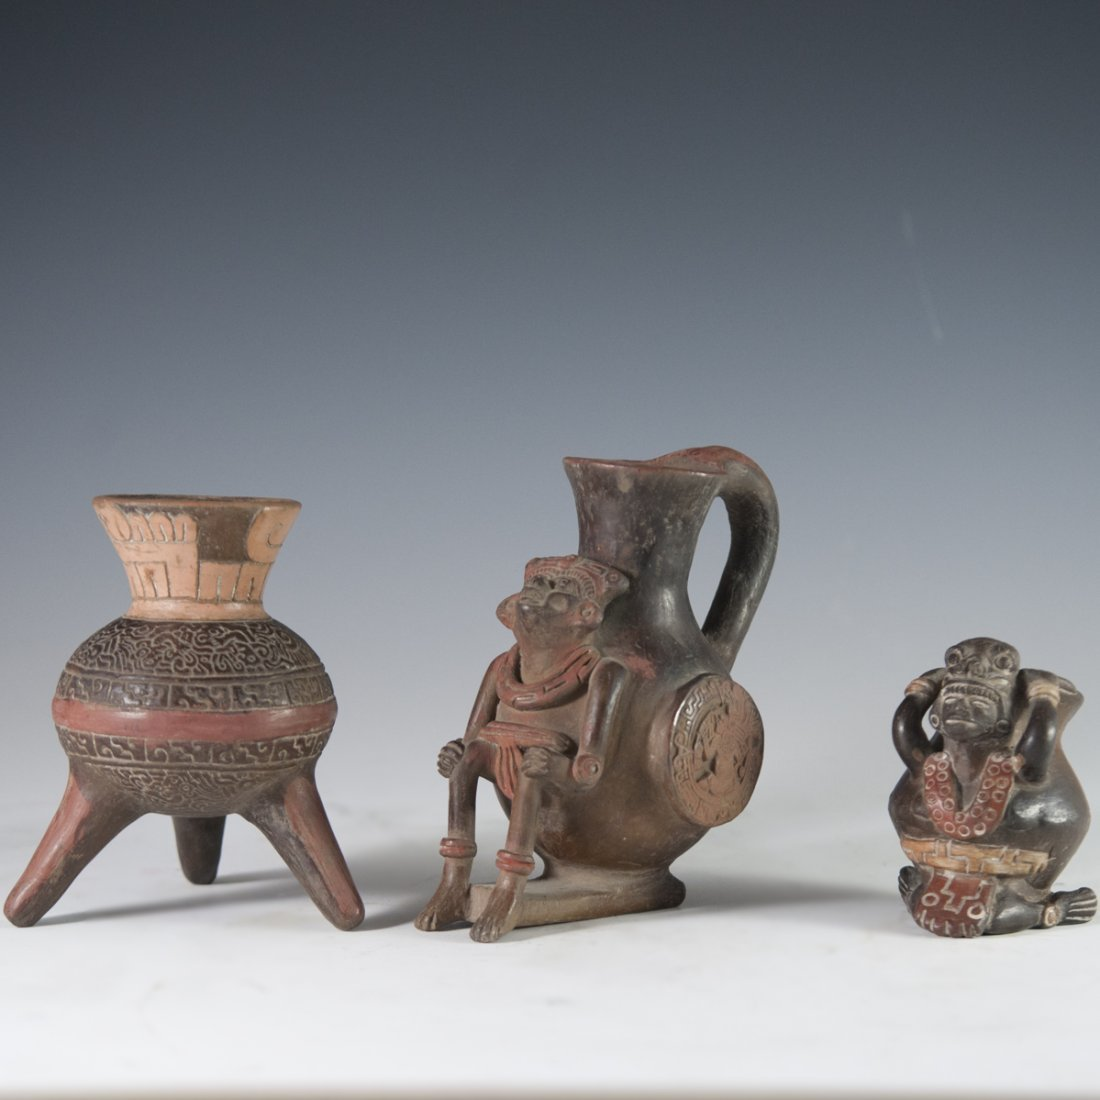 Probably Pre-Columbian Mayan Vessels